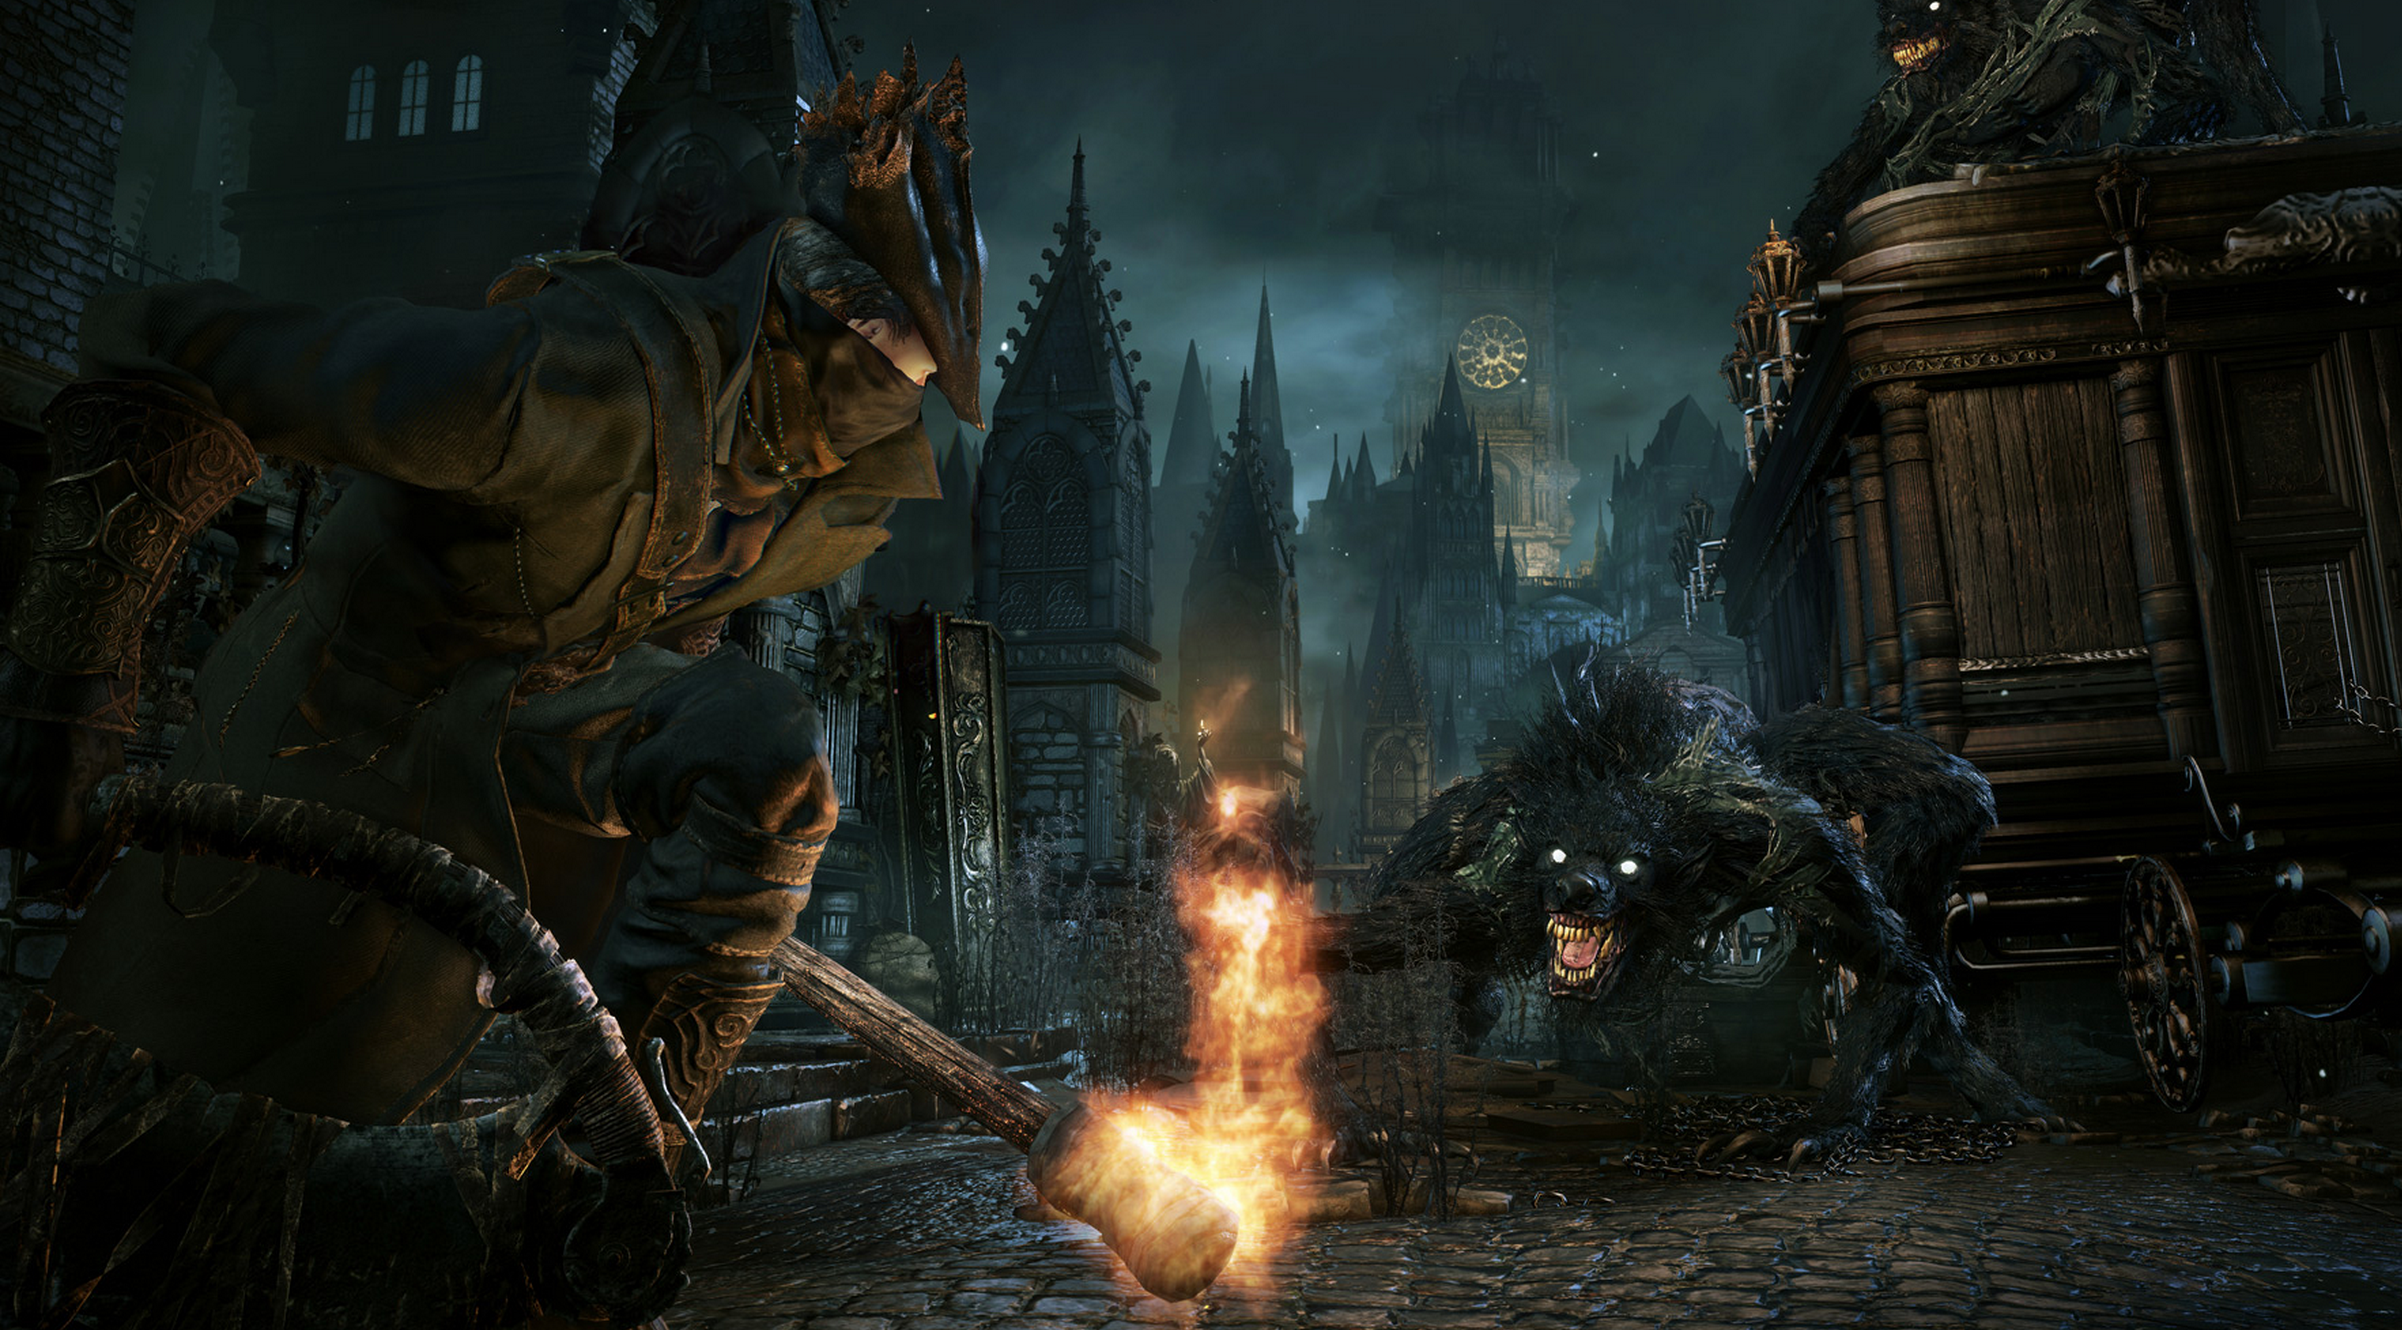 Bloodborne guide: Survival tips and boss walkthroughs for the discerning Hunter